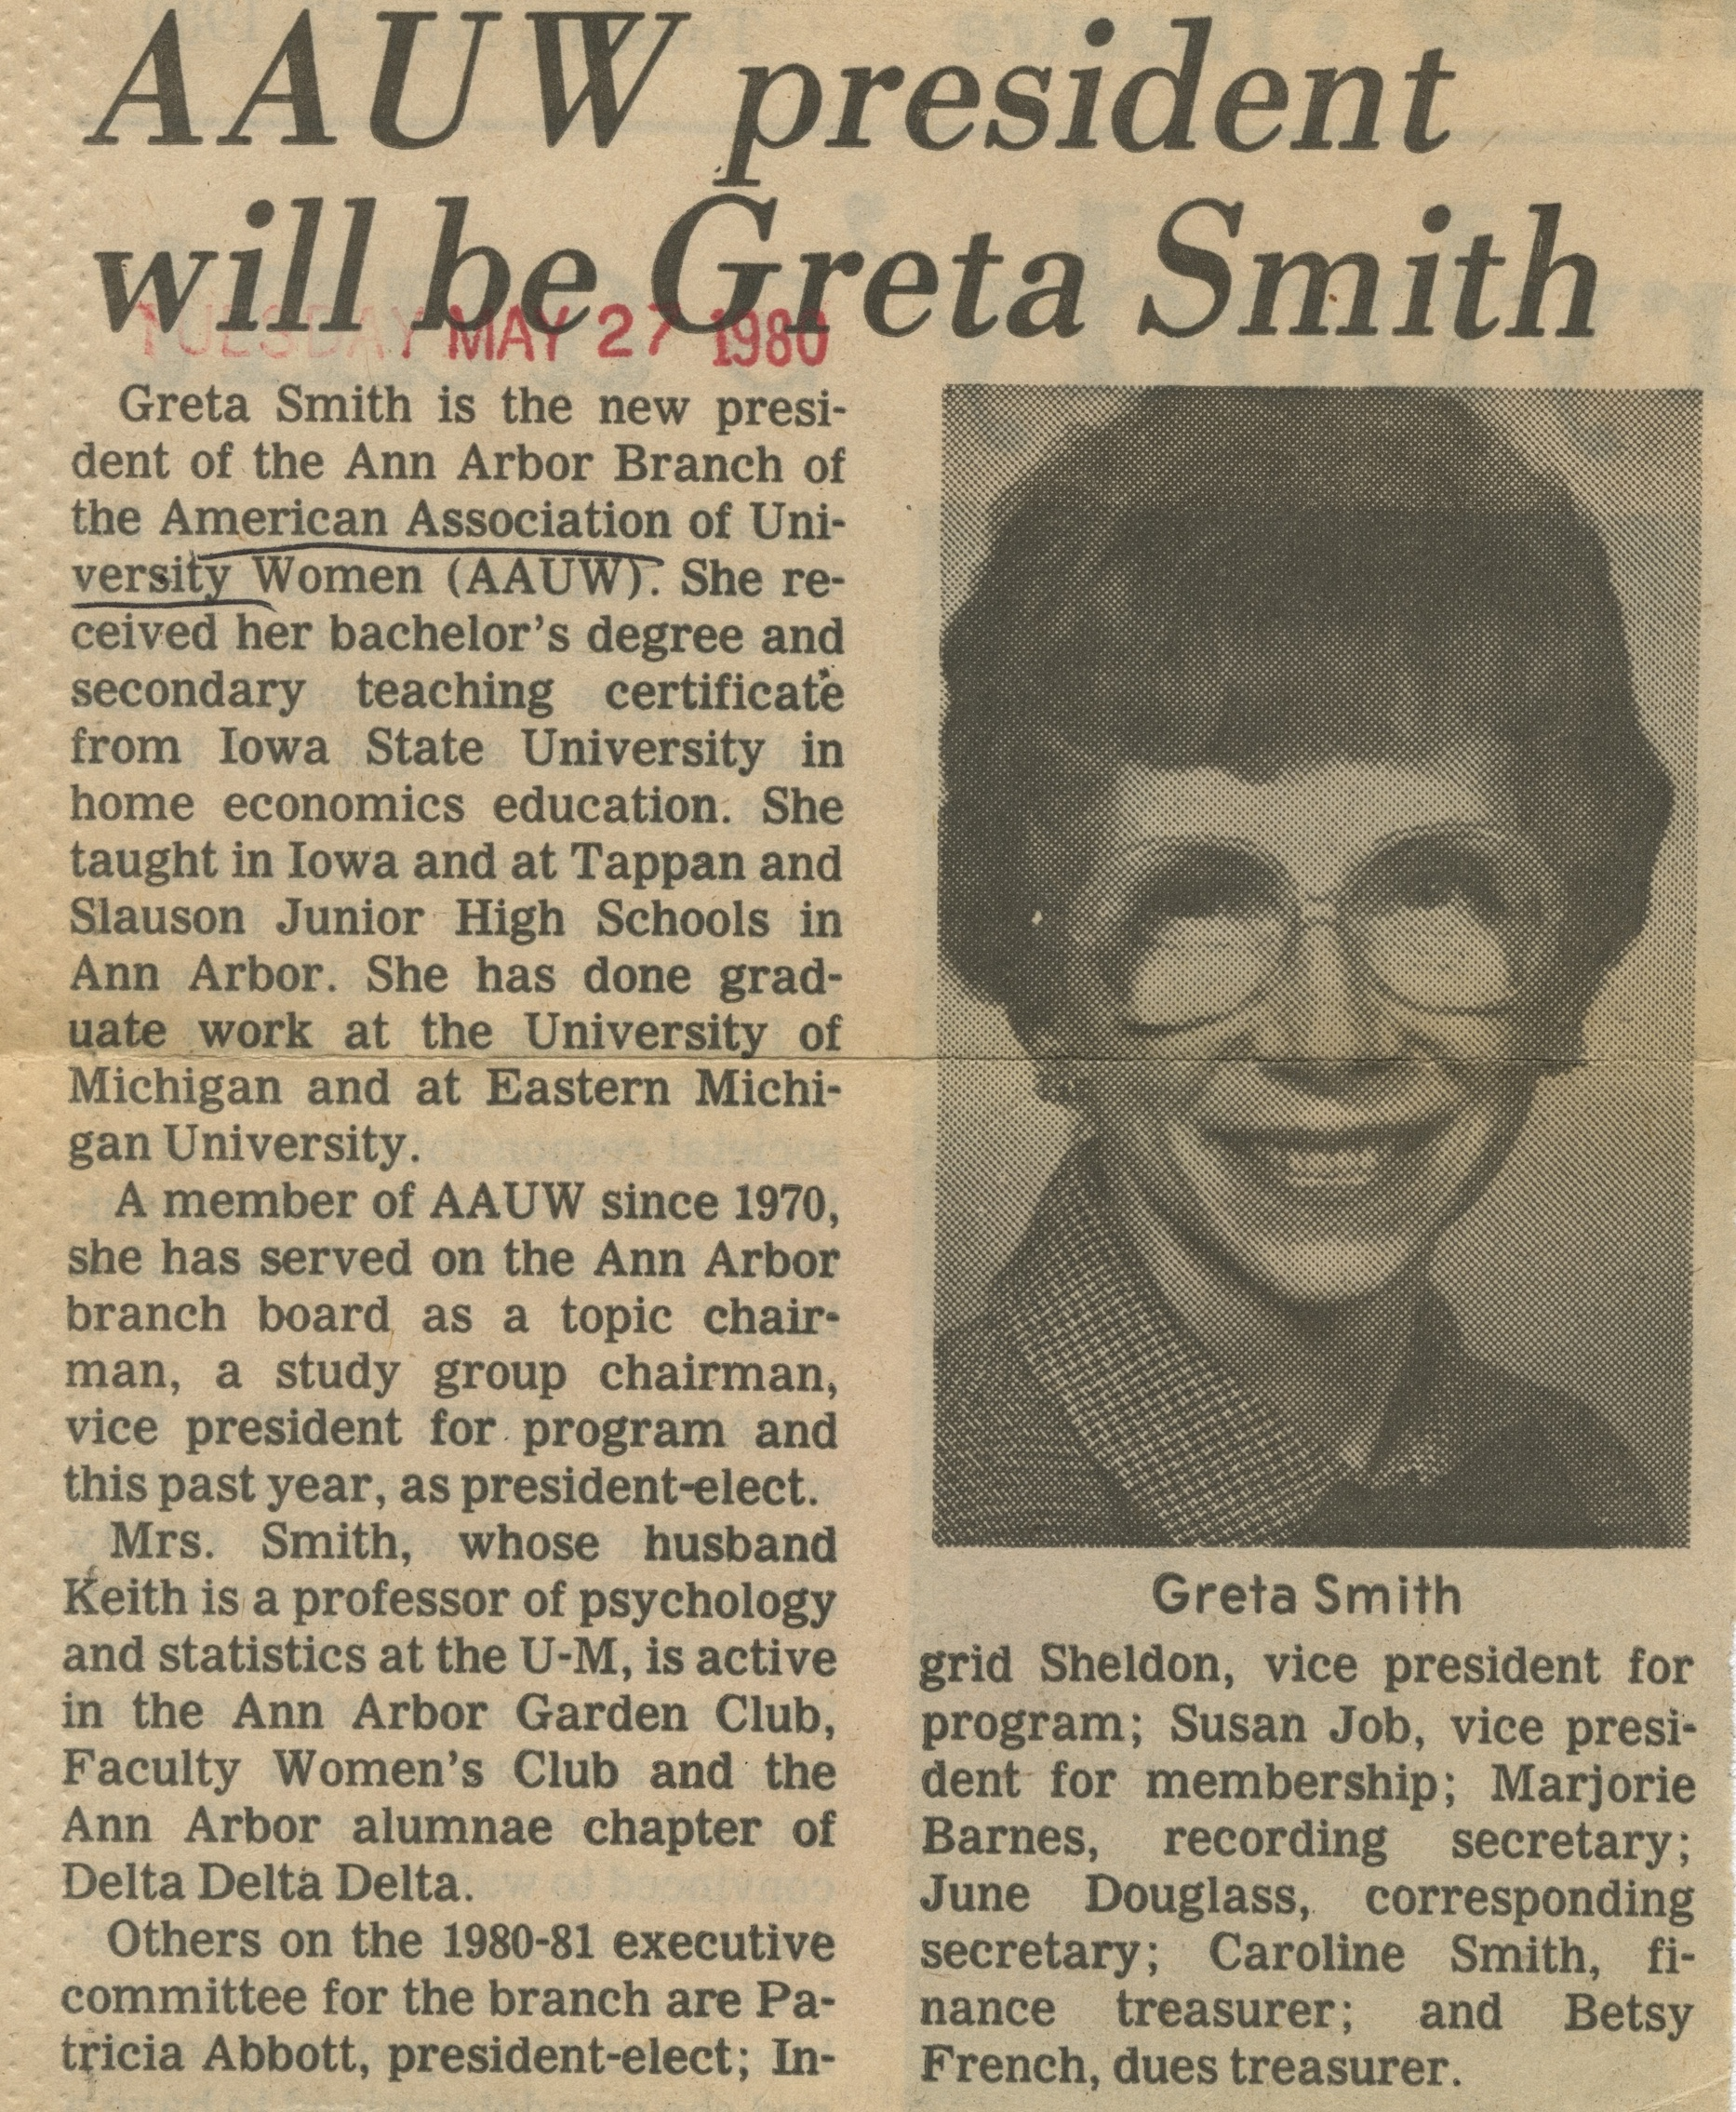 AAUW President Will Be Greta Smith image